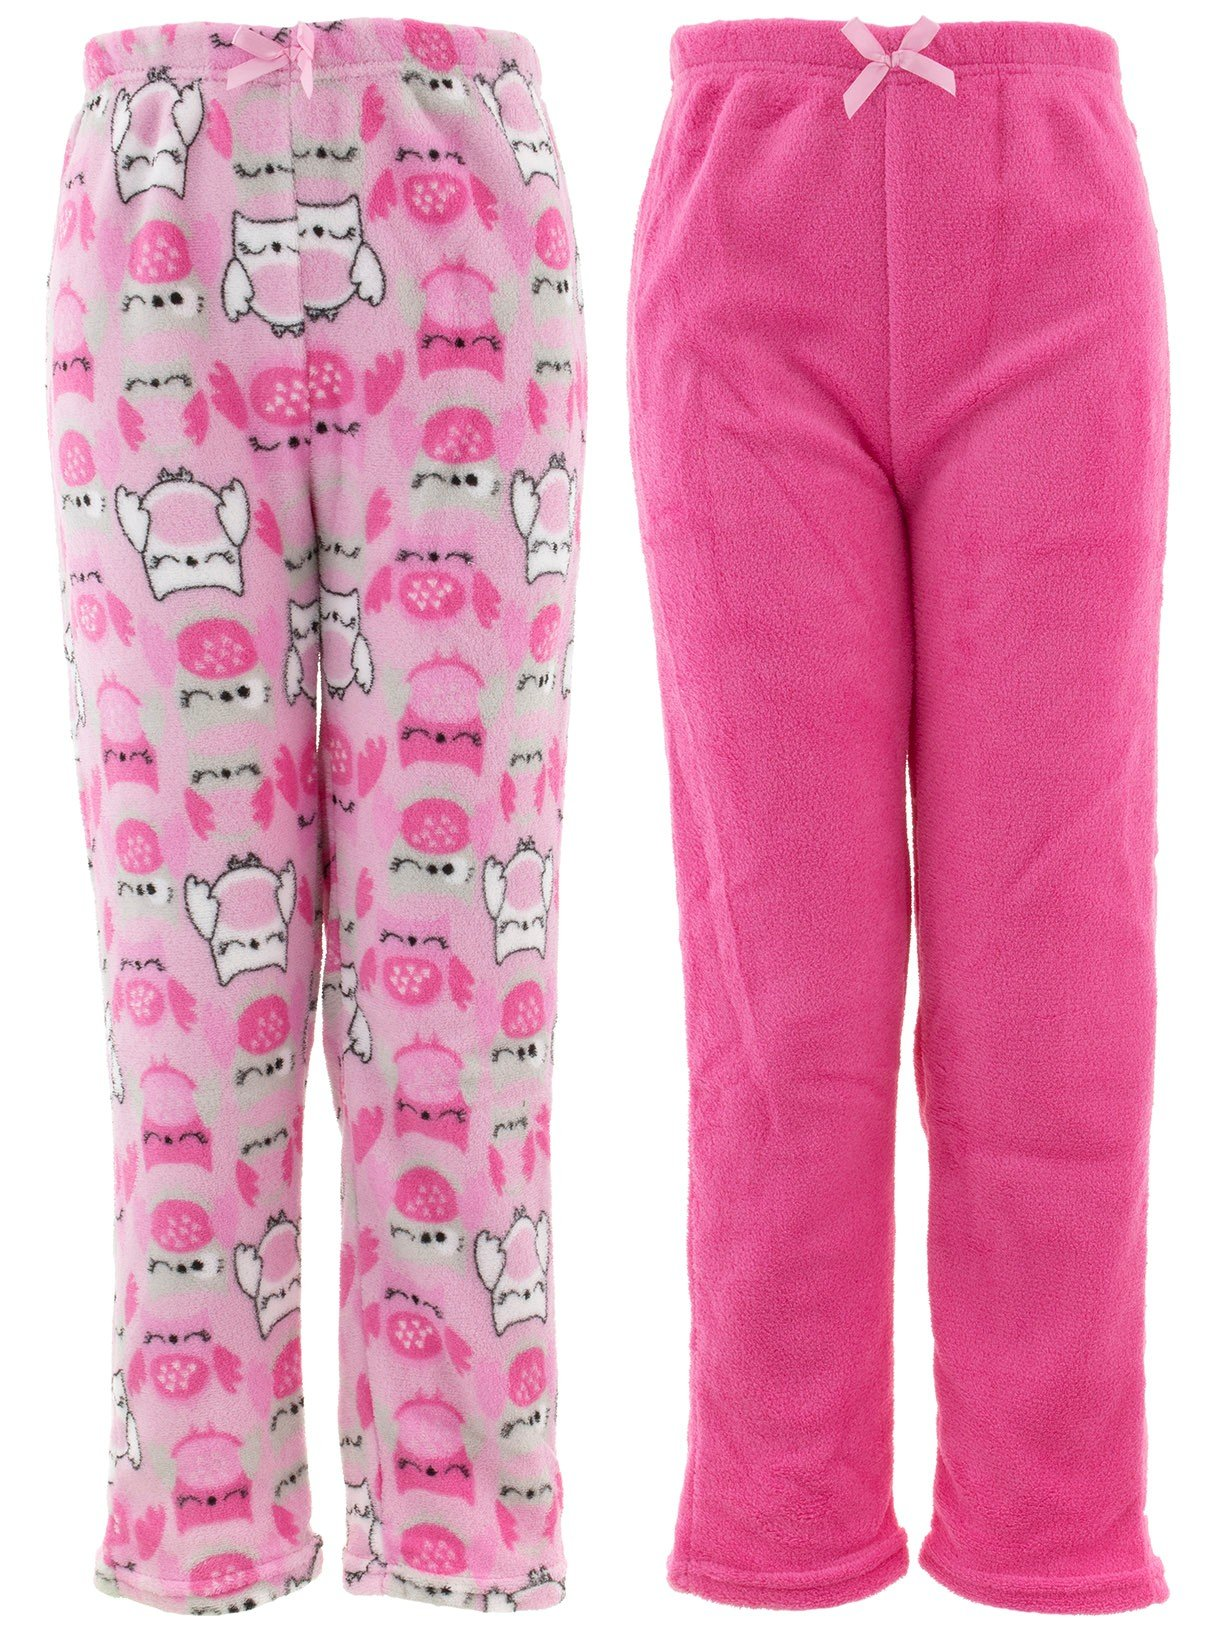 Chili Peppers Big Girls' Pink Owl 2-Pack Pajama Pants XL/14-16